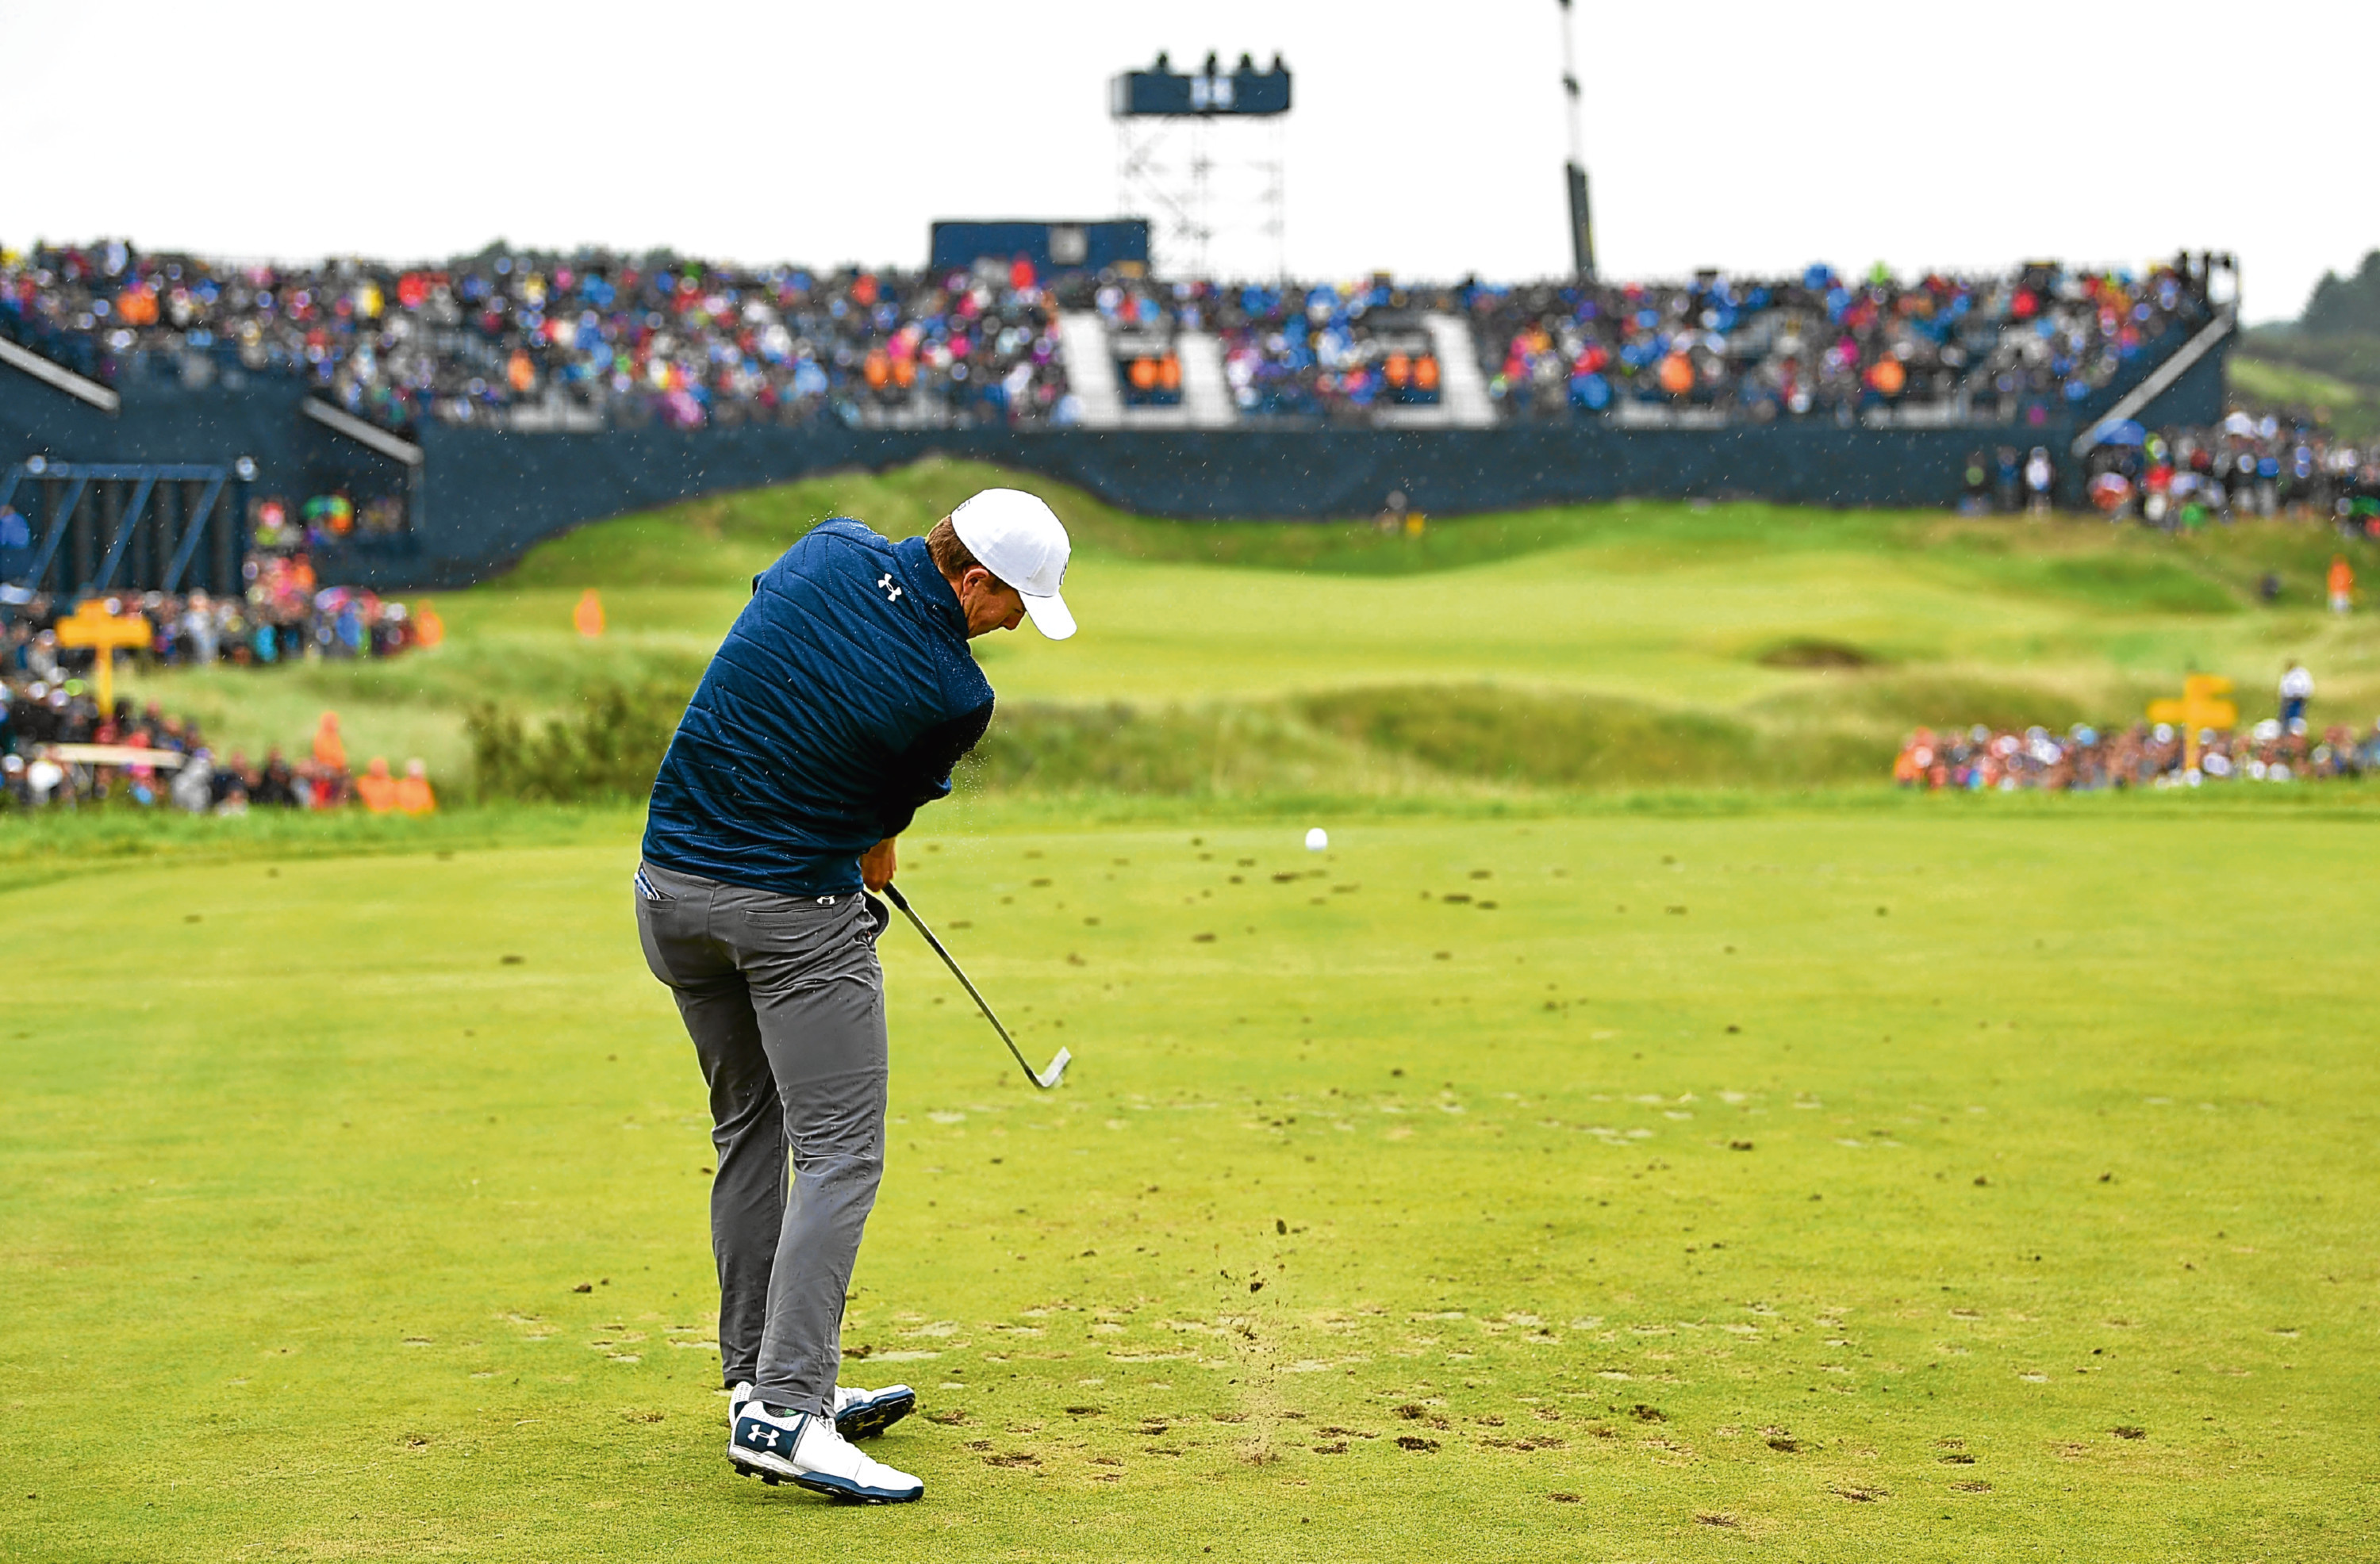 Soon after his shank of the year, Jordan Spieth hits the shot of the year at the 14th at Birkdale to kickstart the comeback of the year.